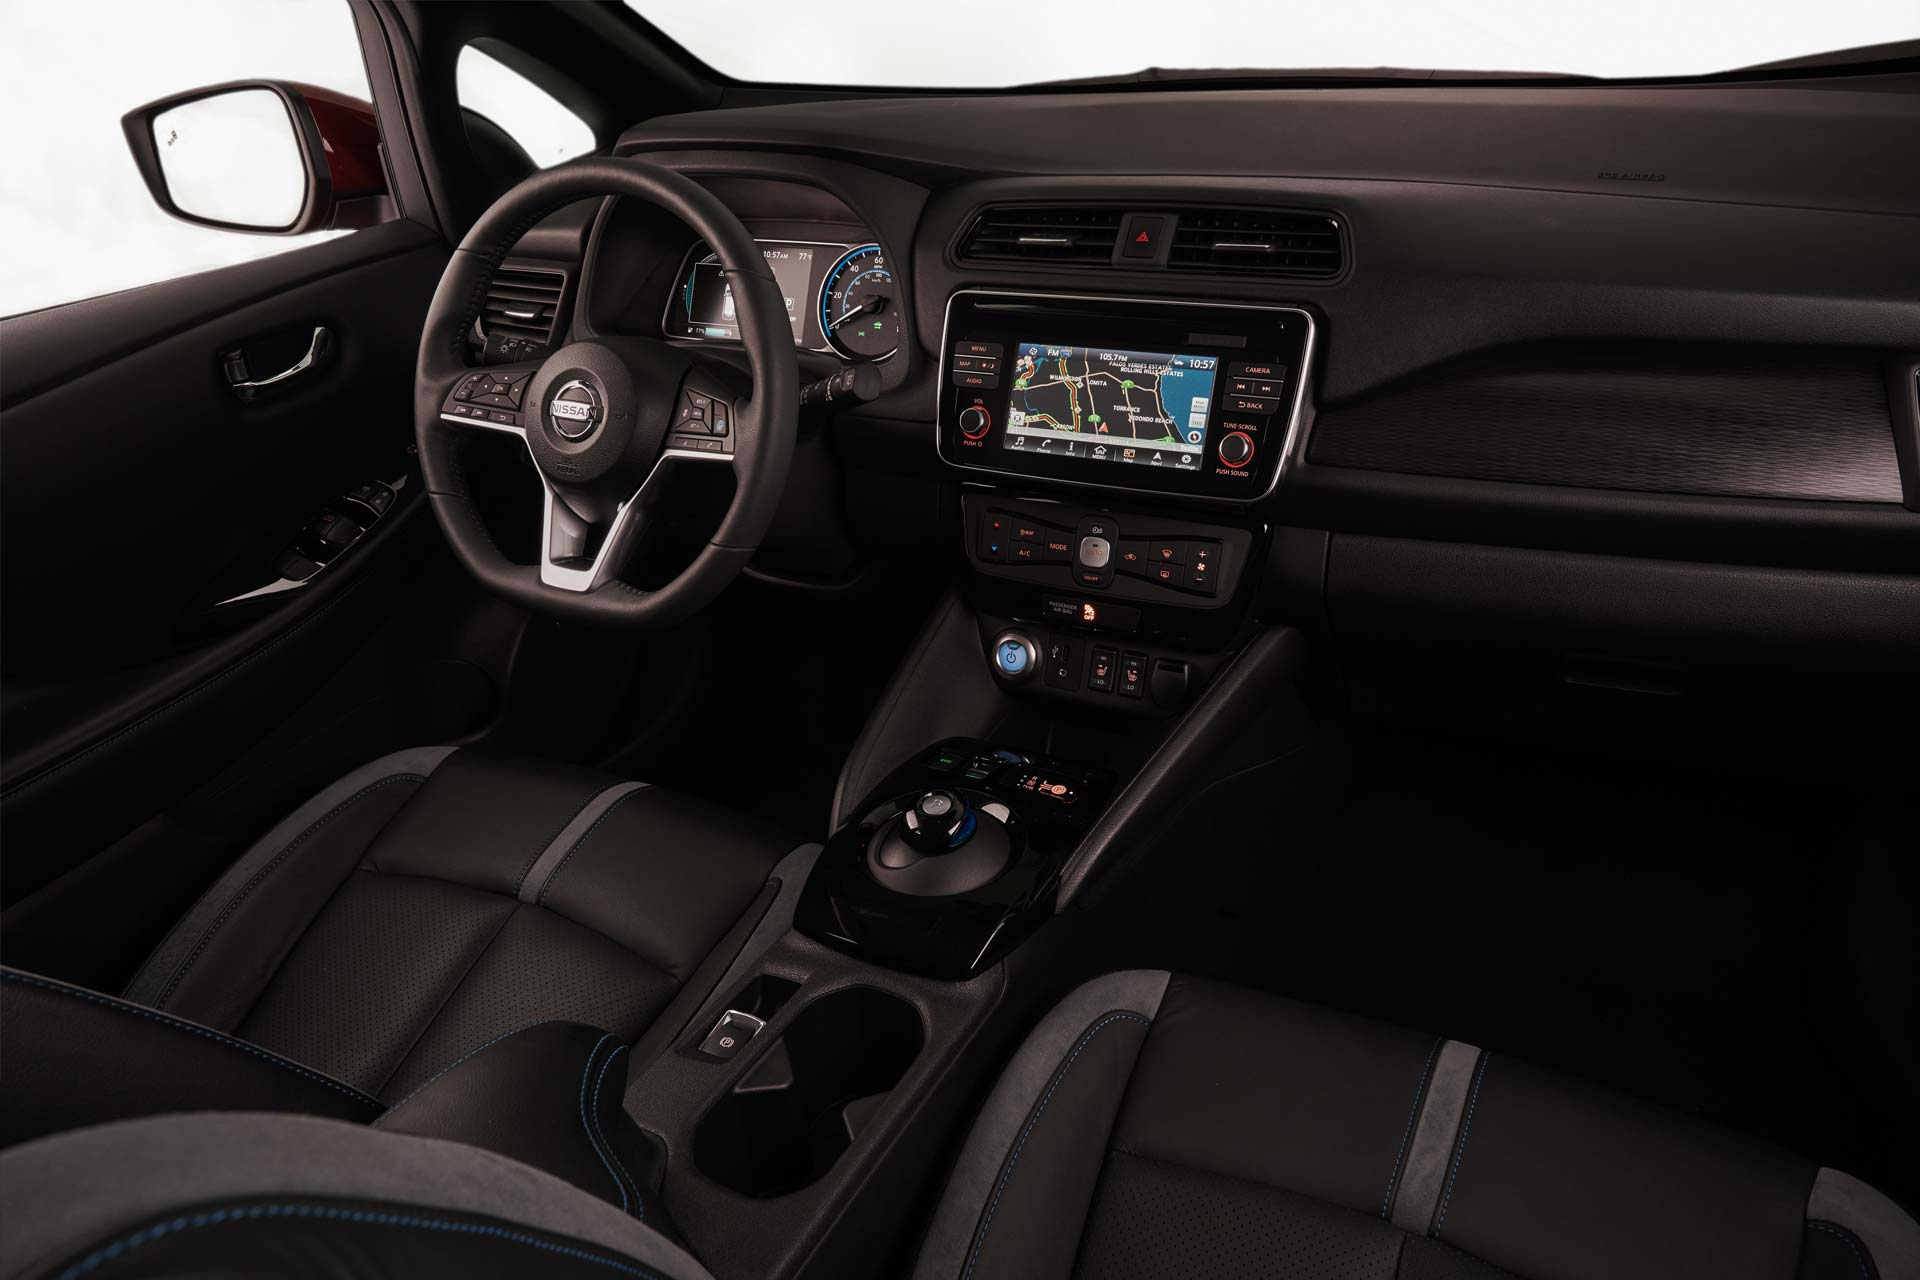 2018-Nissan-LEAF-interior_2